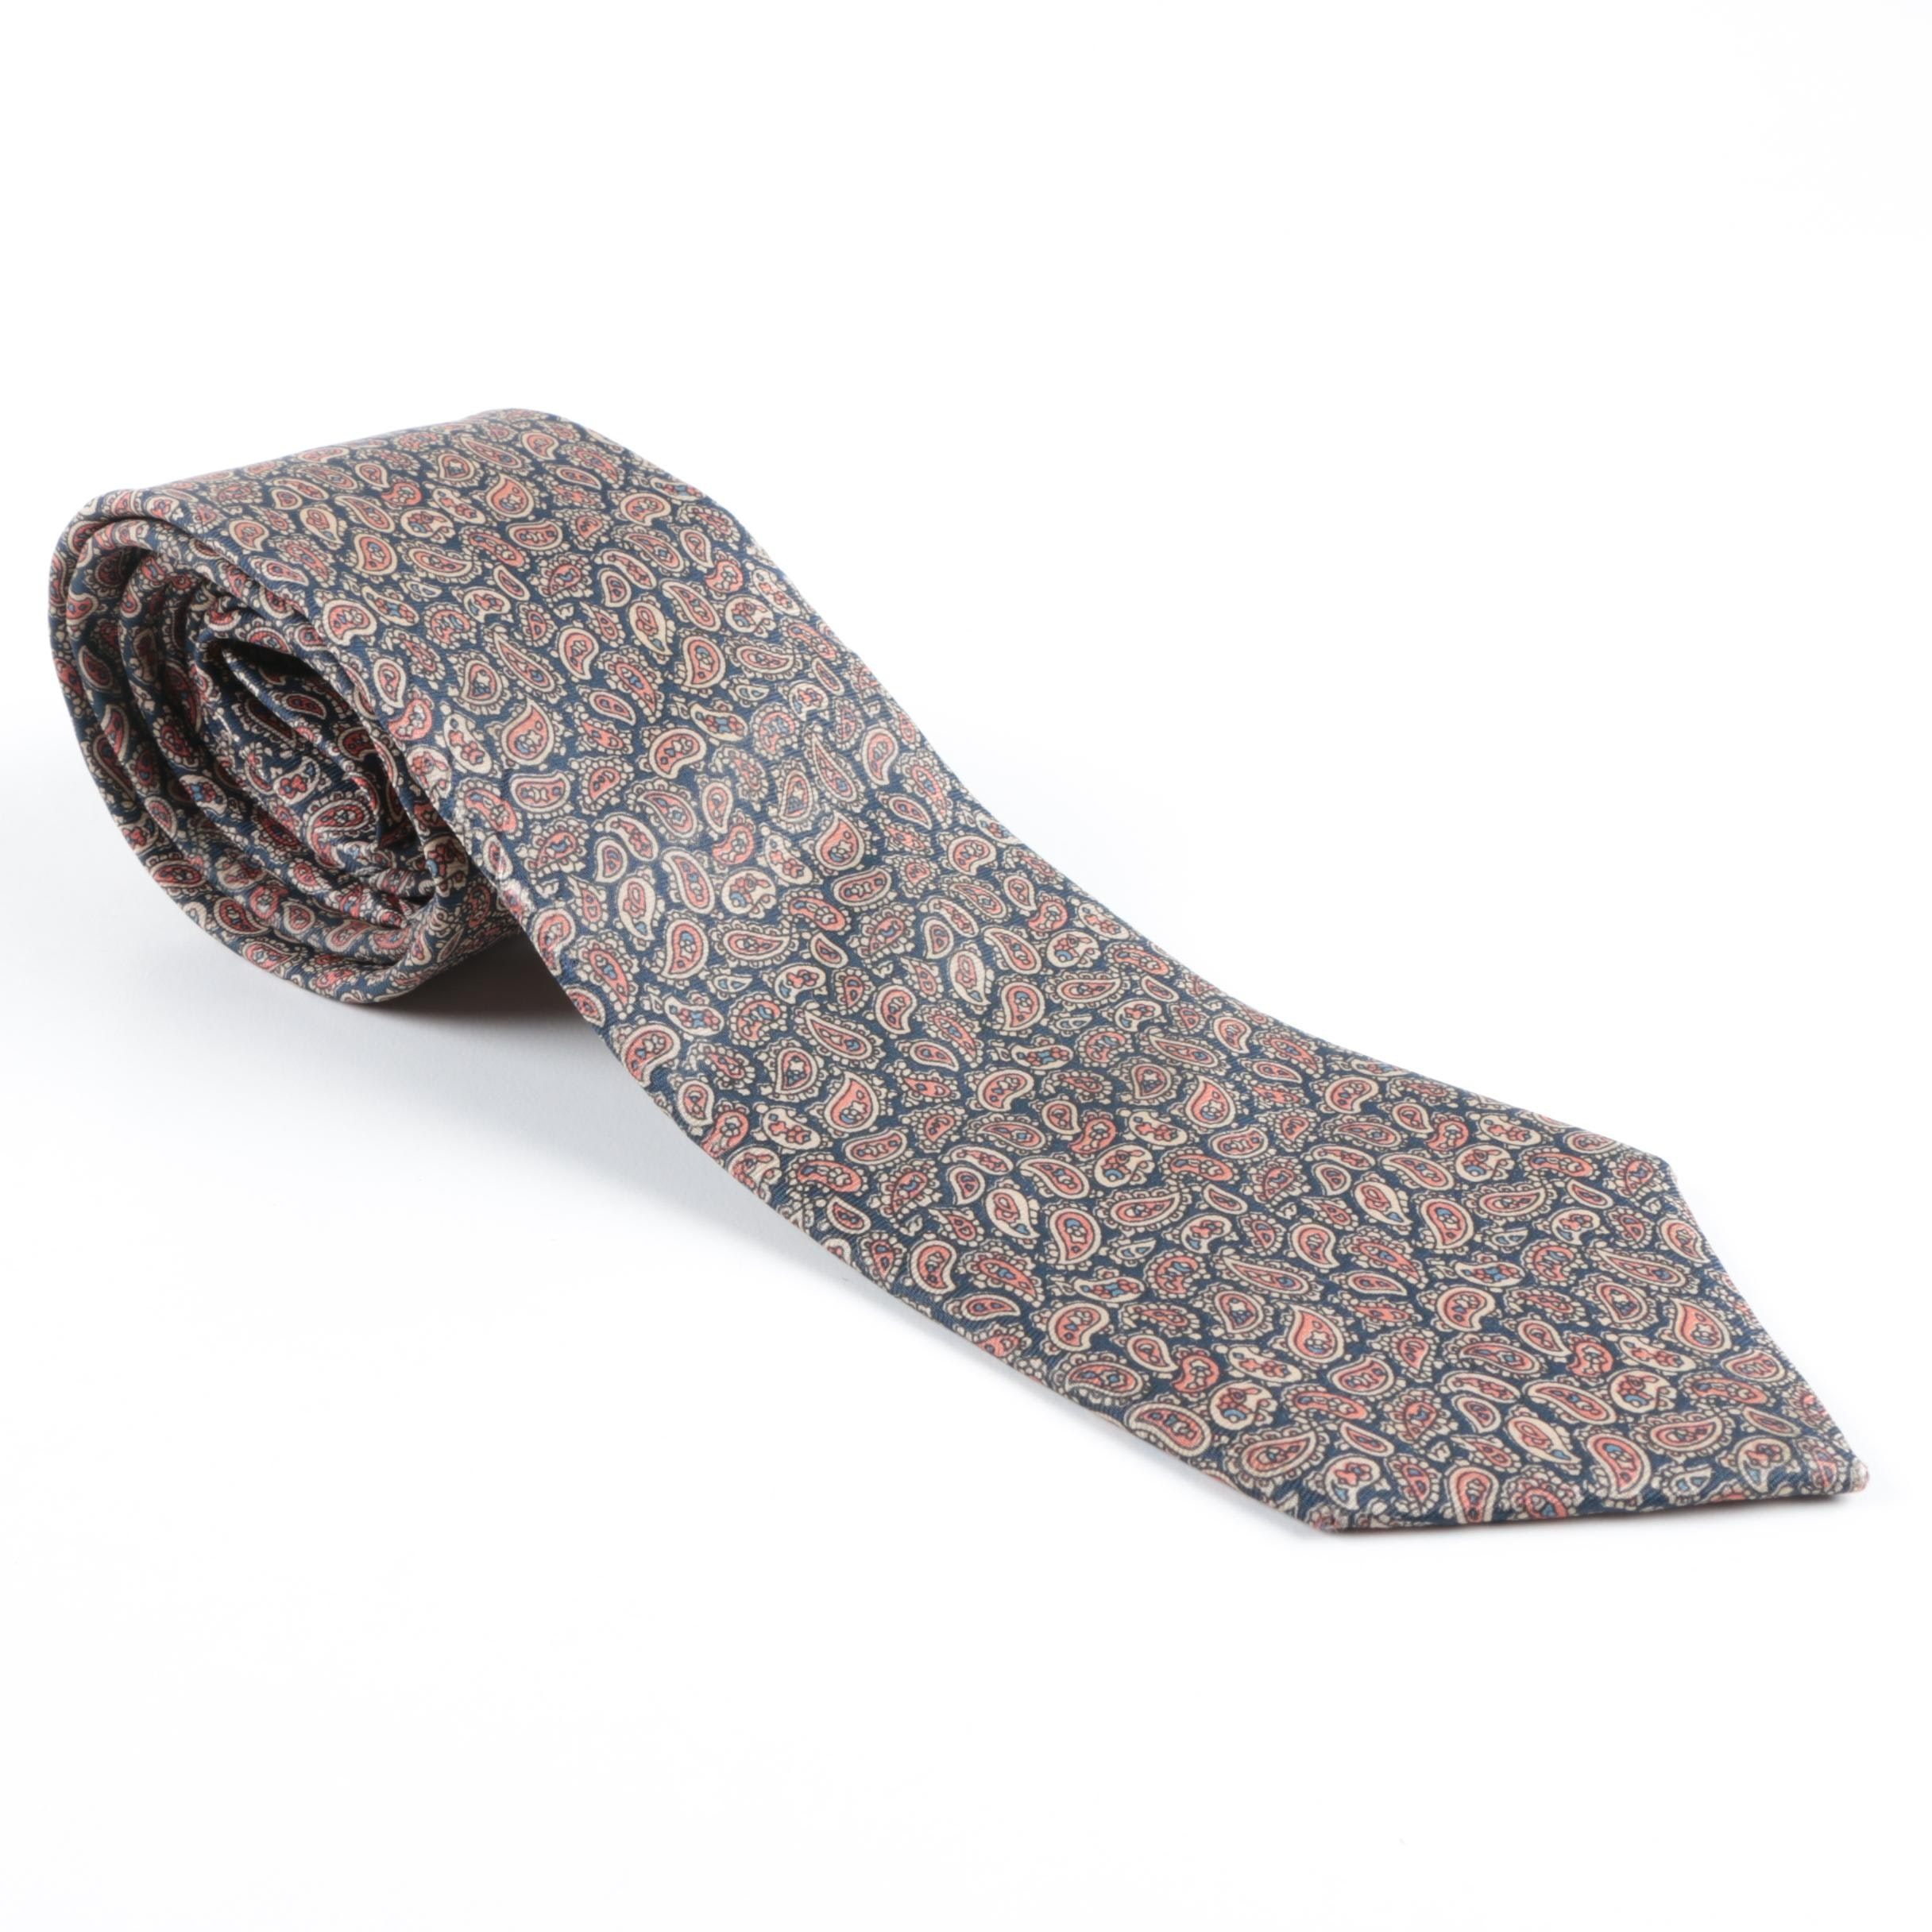 Yves Saint Laurent Silk Paisley Tie